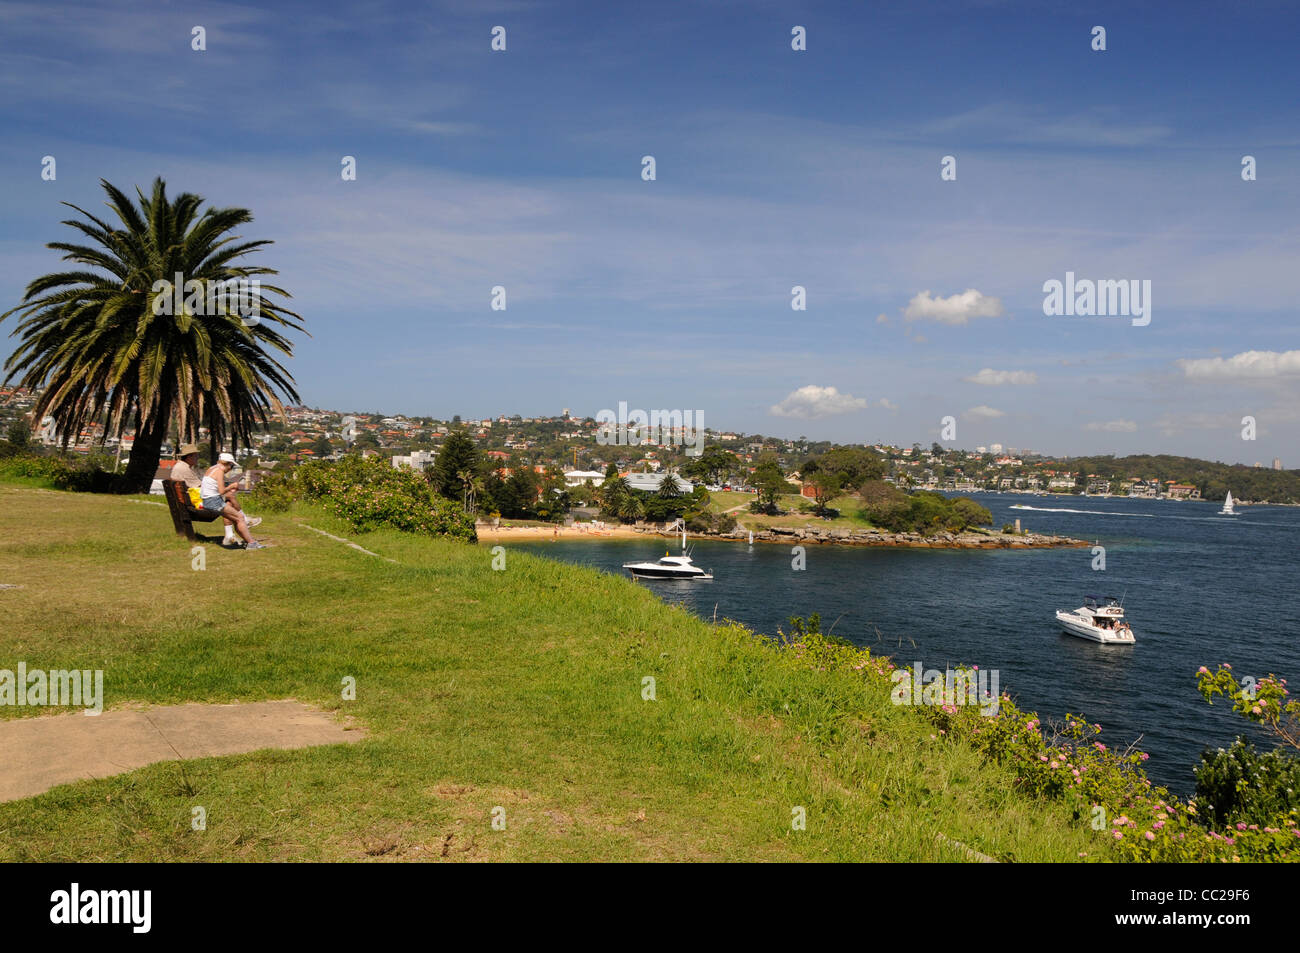 Camp Cove at Watsons Bay near Sydney in New South Wales, Australia. - Stock Image